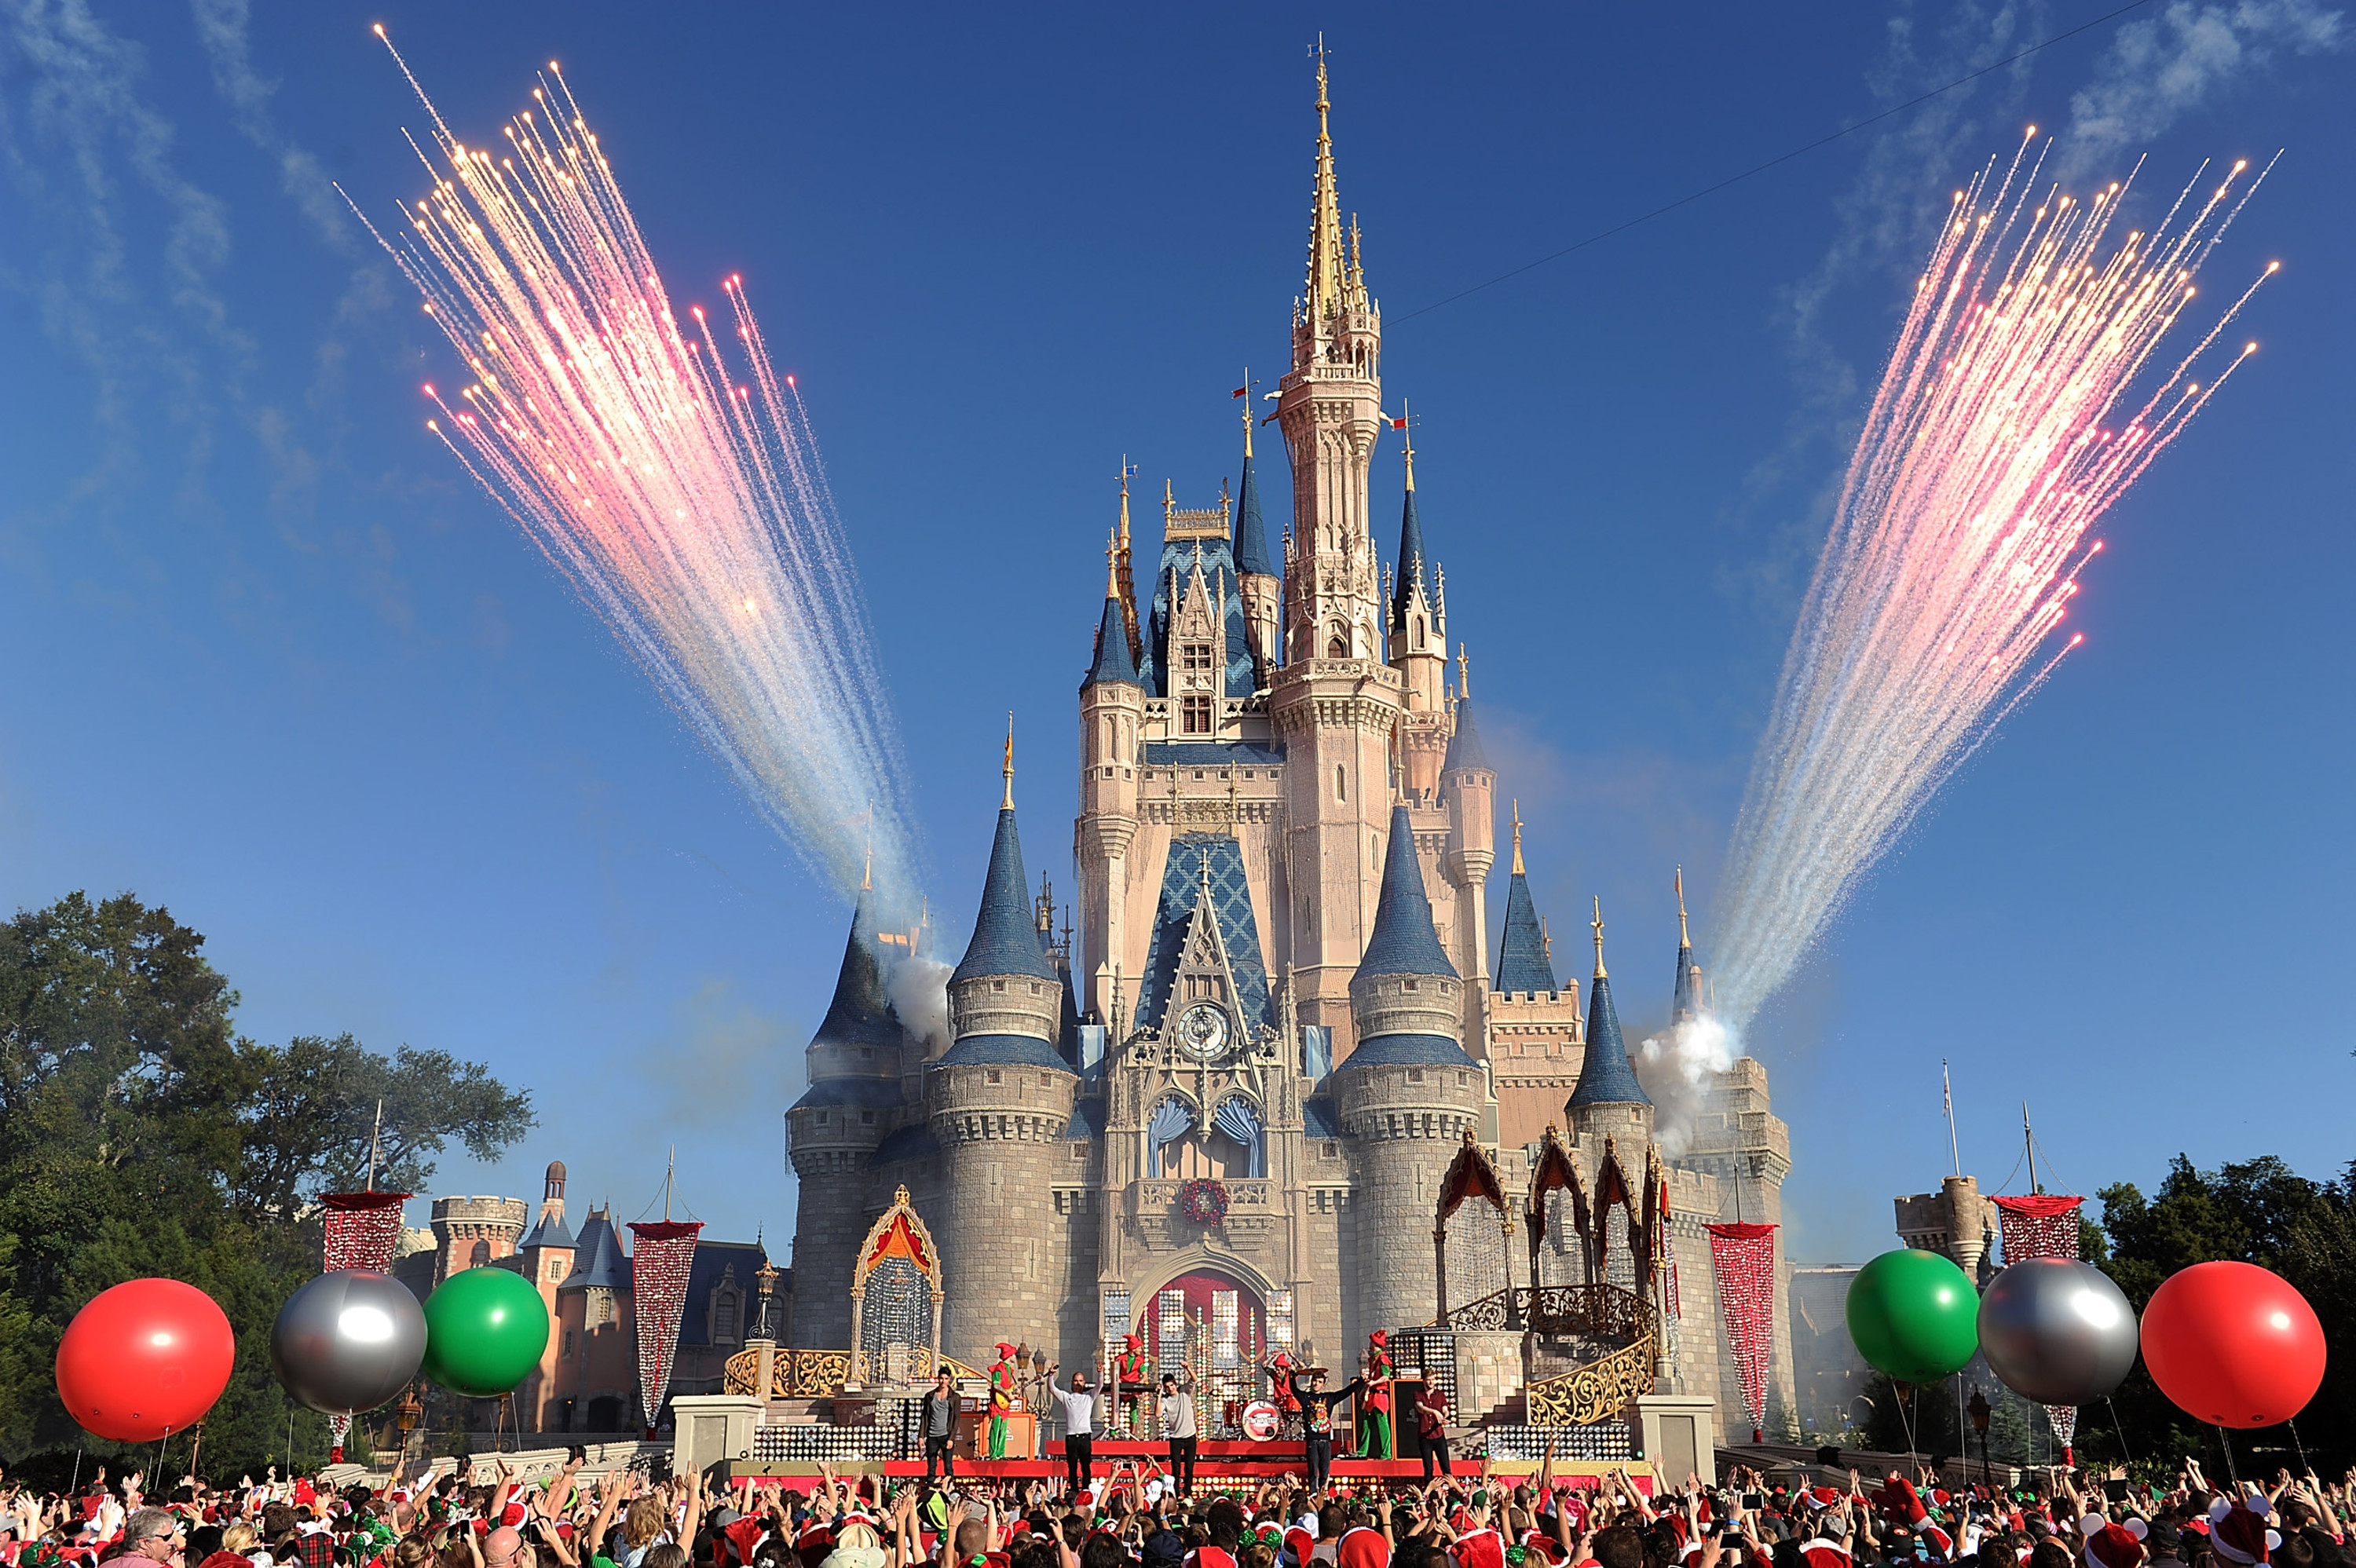 The Wanted performs at the Magic Kingdom park at Walt Disney World Resort in Lake Buena Vista, Florida on Dec. 6, 2013.